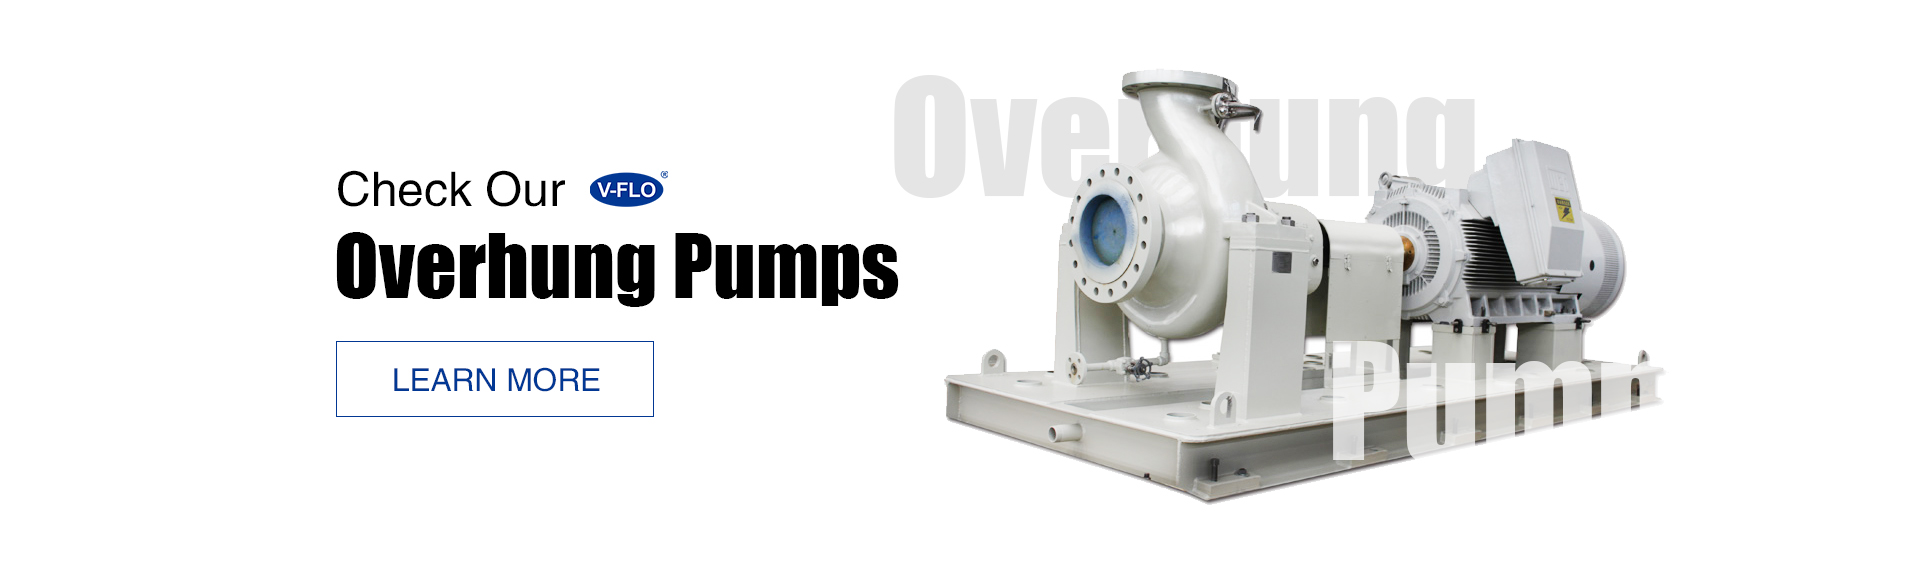 overhung pumps